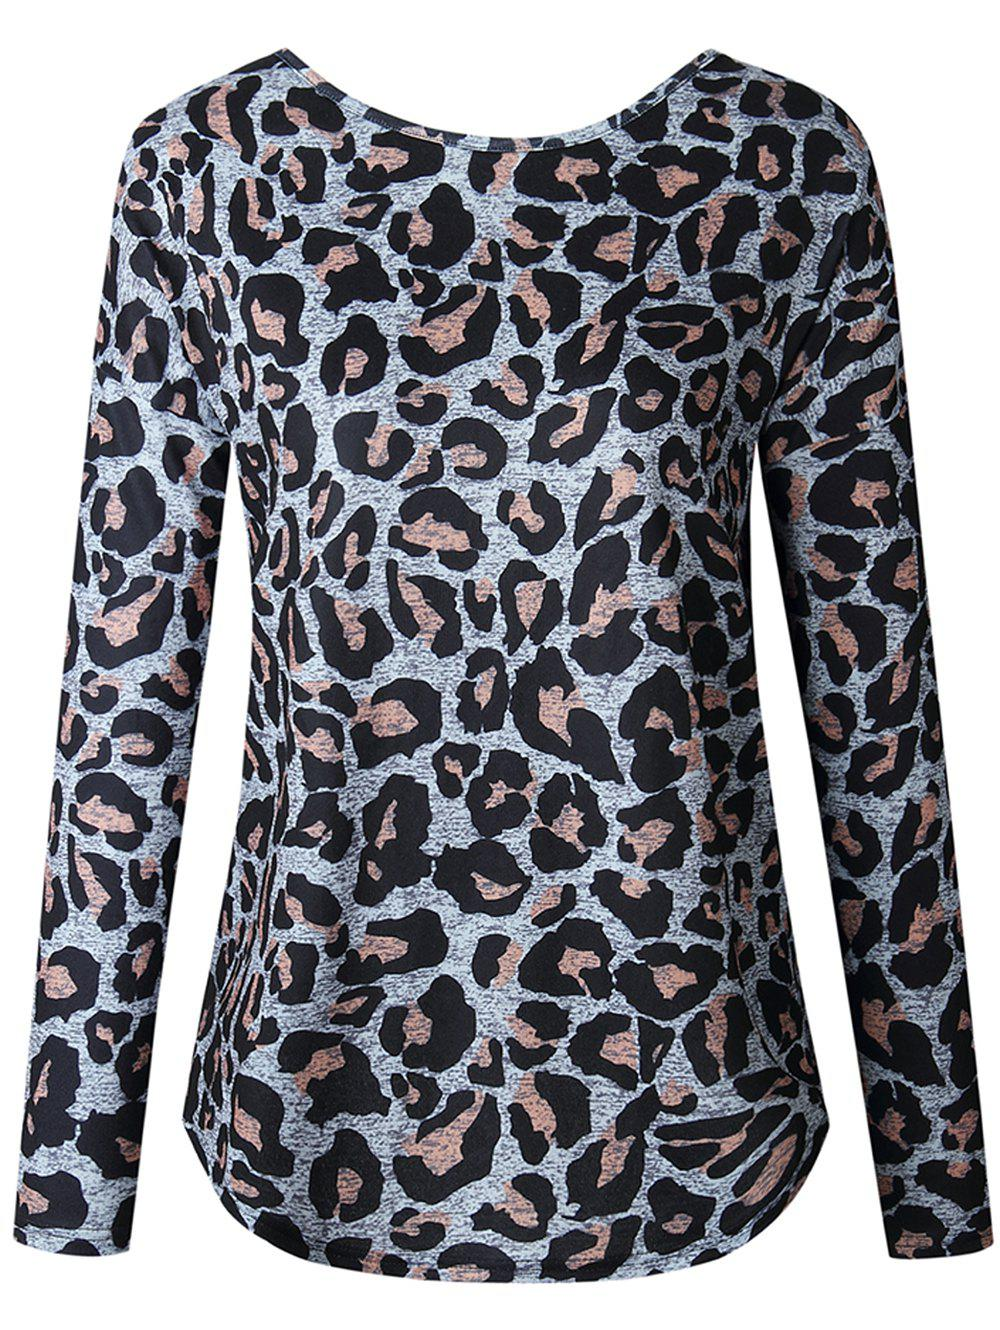 Affordable Women Casual Long Sleeve Blouse Ruched Shirt Sexy Leopard Grain Tops